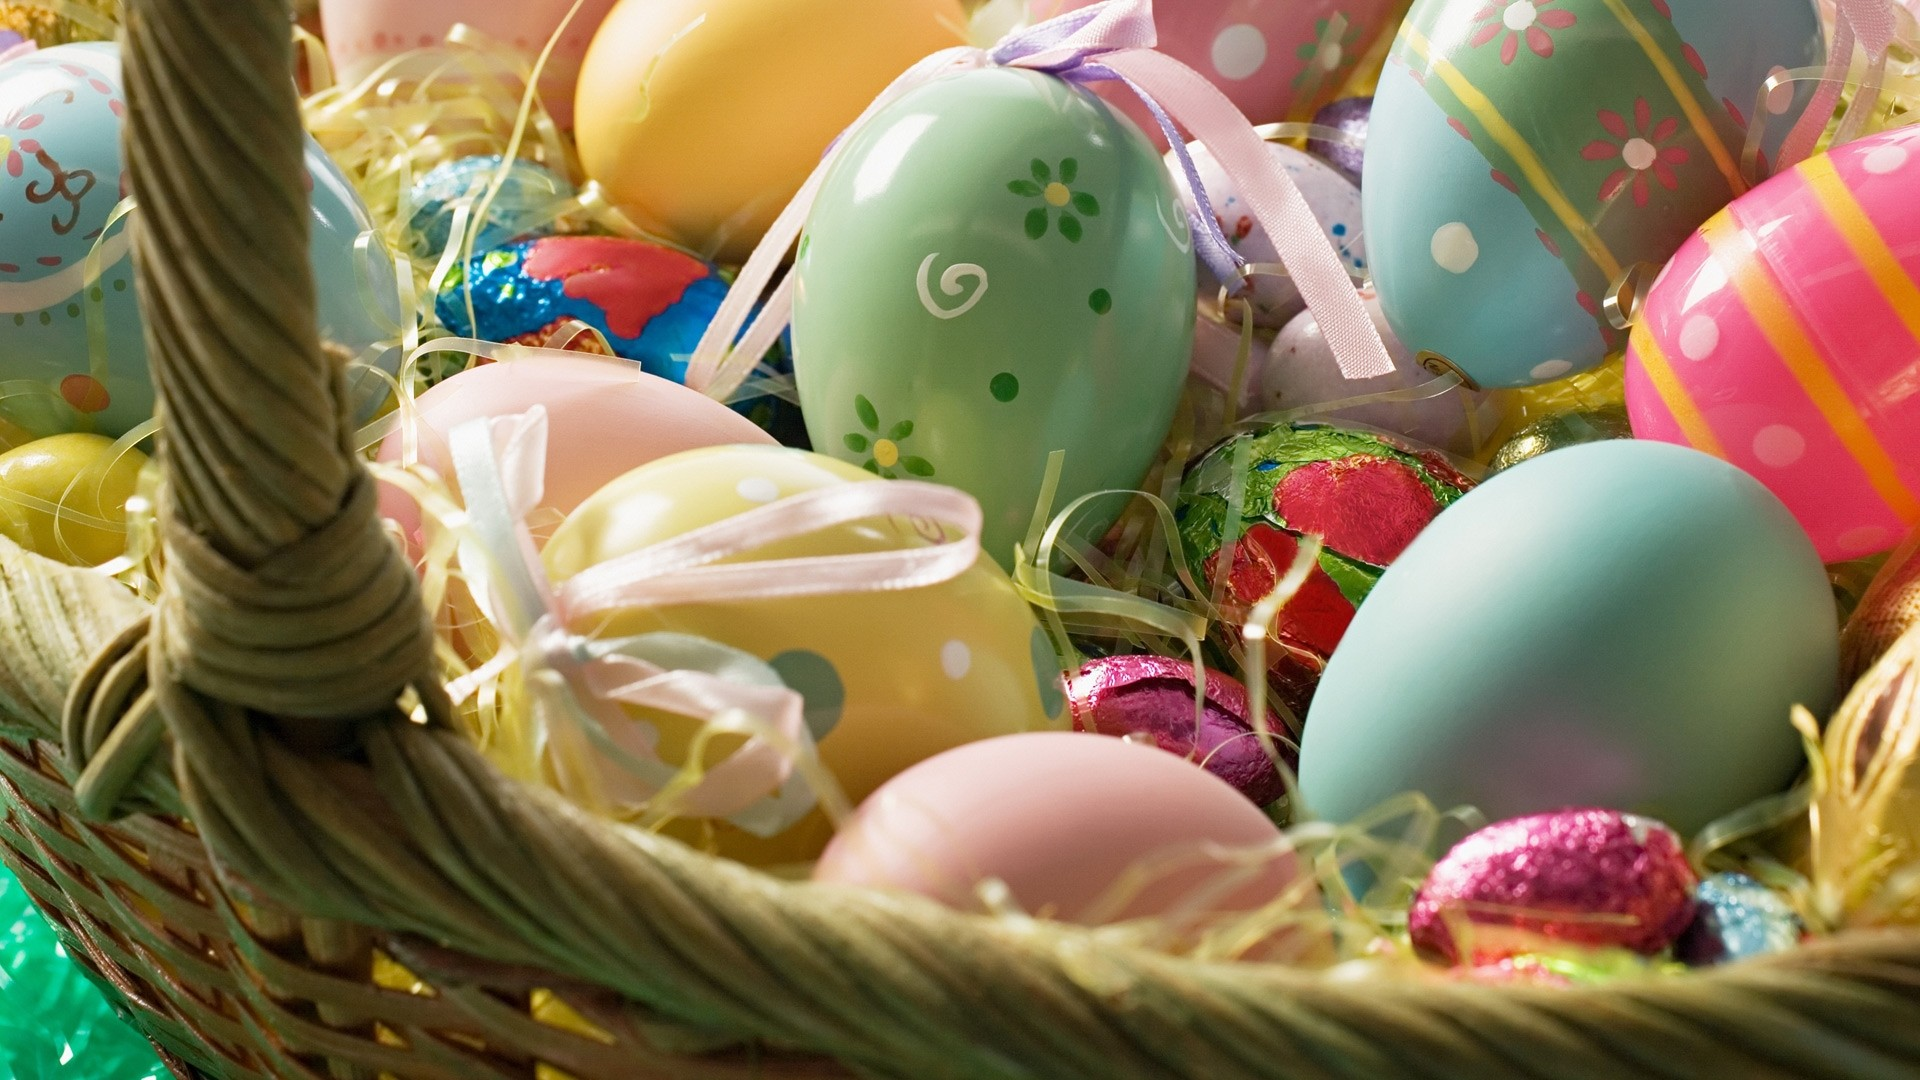 Easter 2020 Wallpaper Full HD